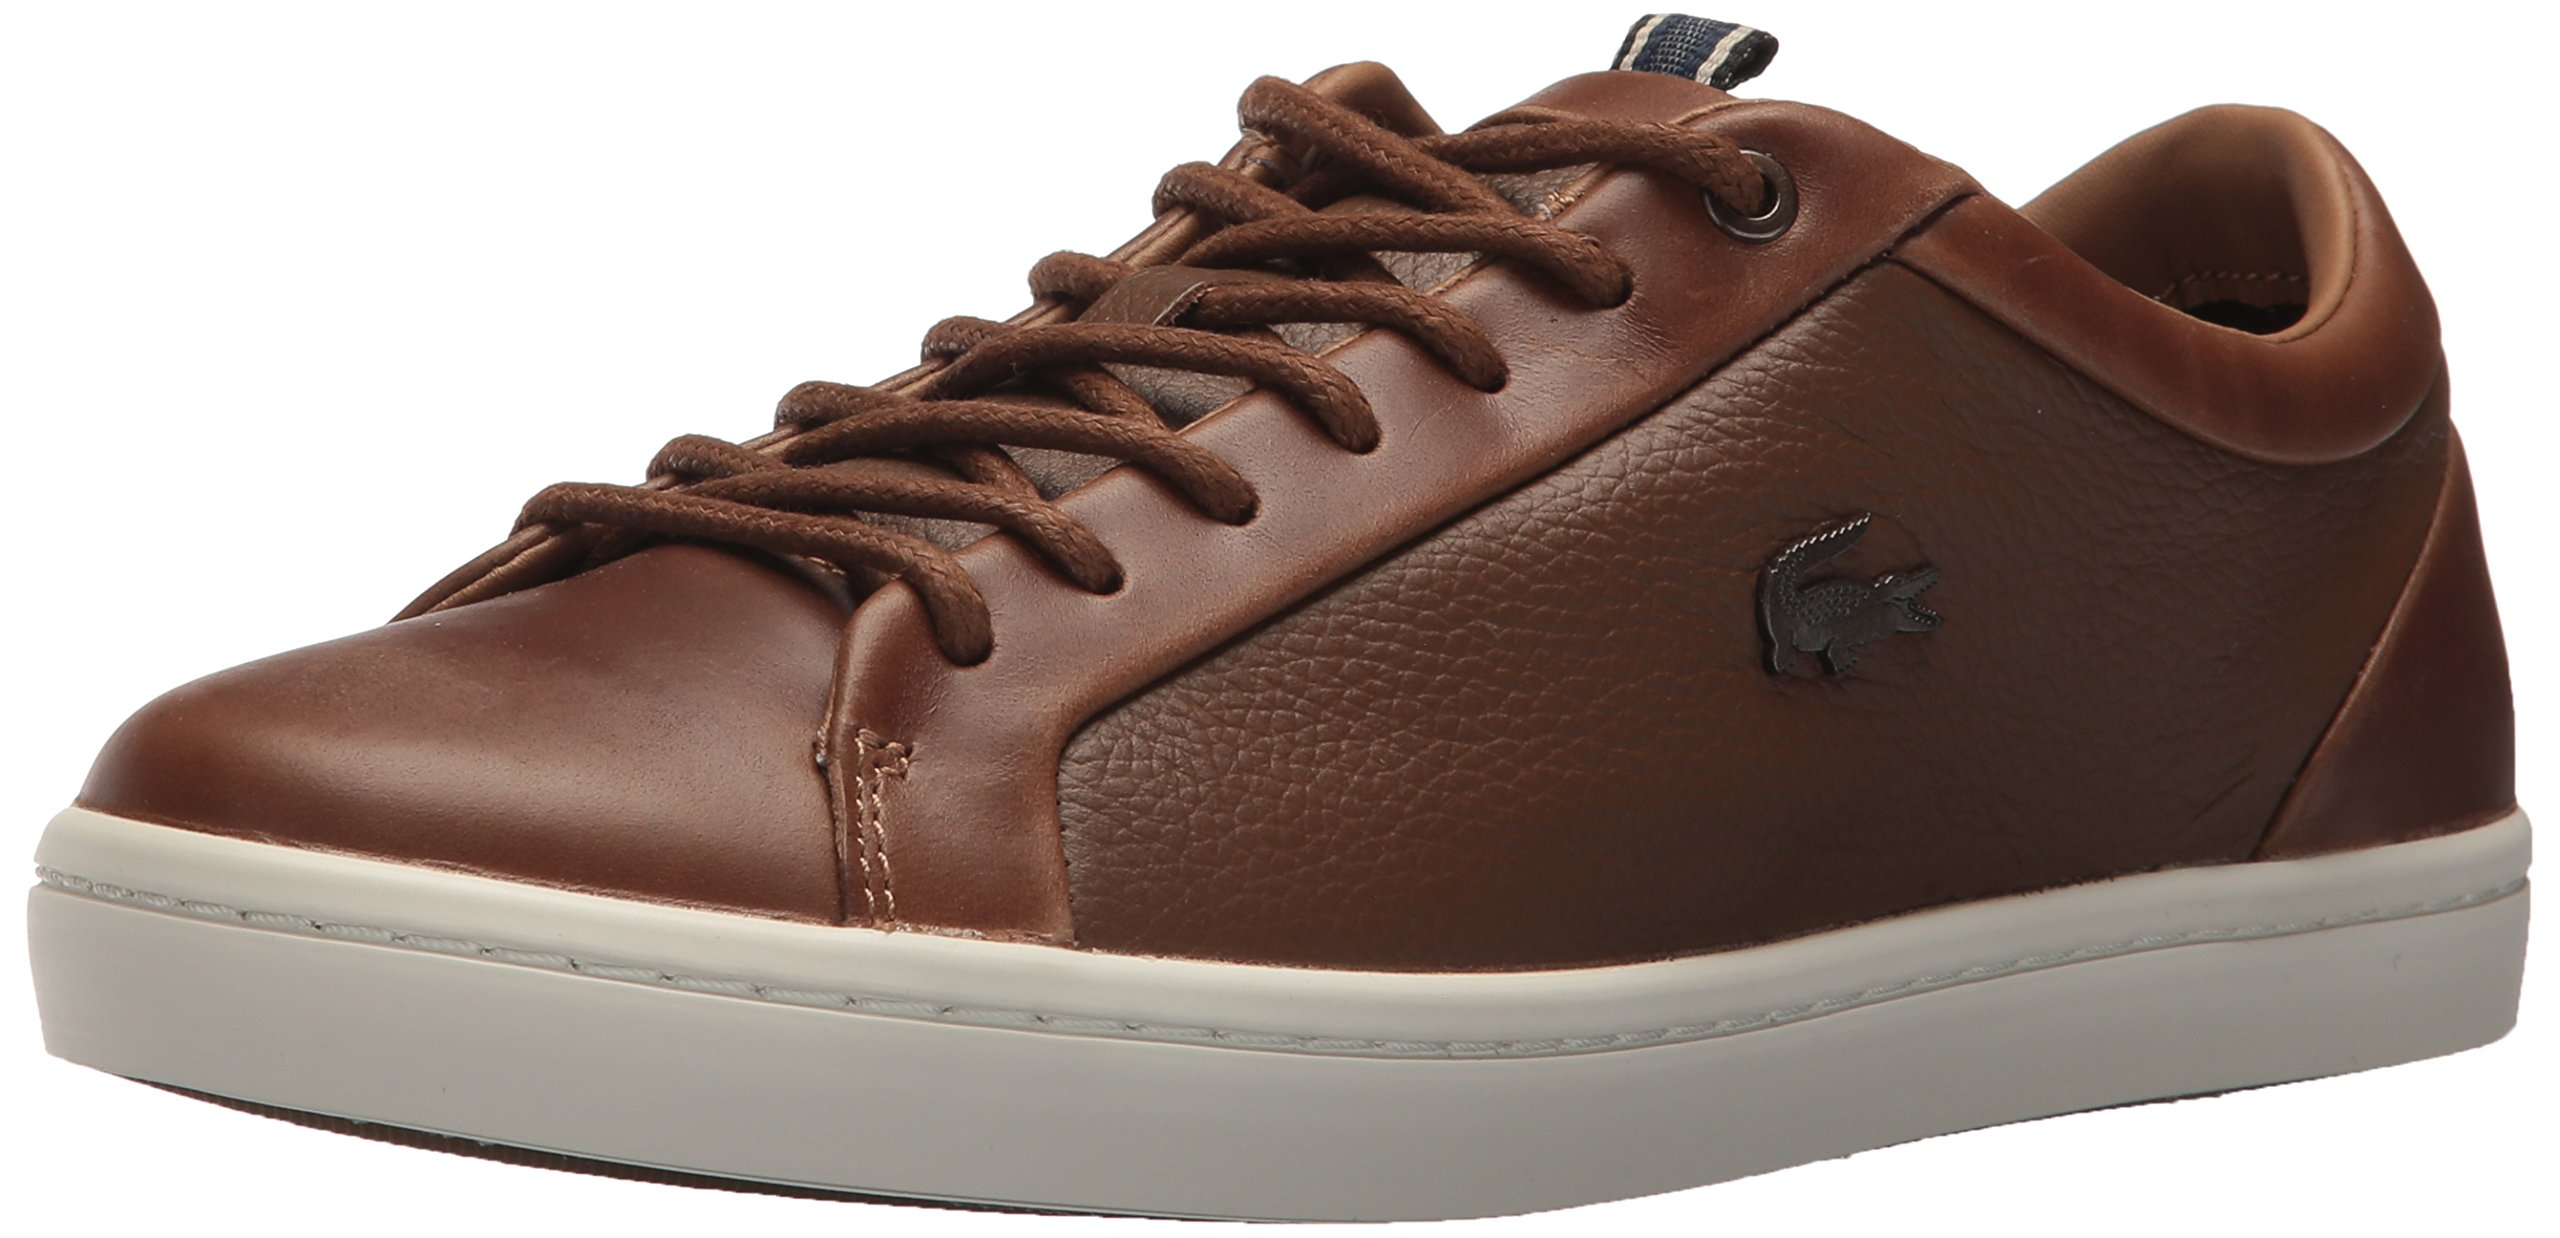 Lacoste Men's Straightset Sneakers by Lacoste